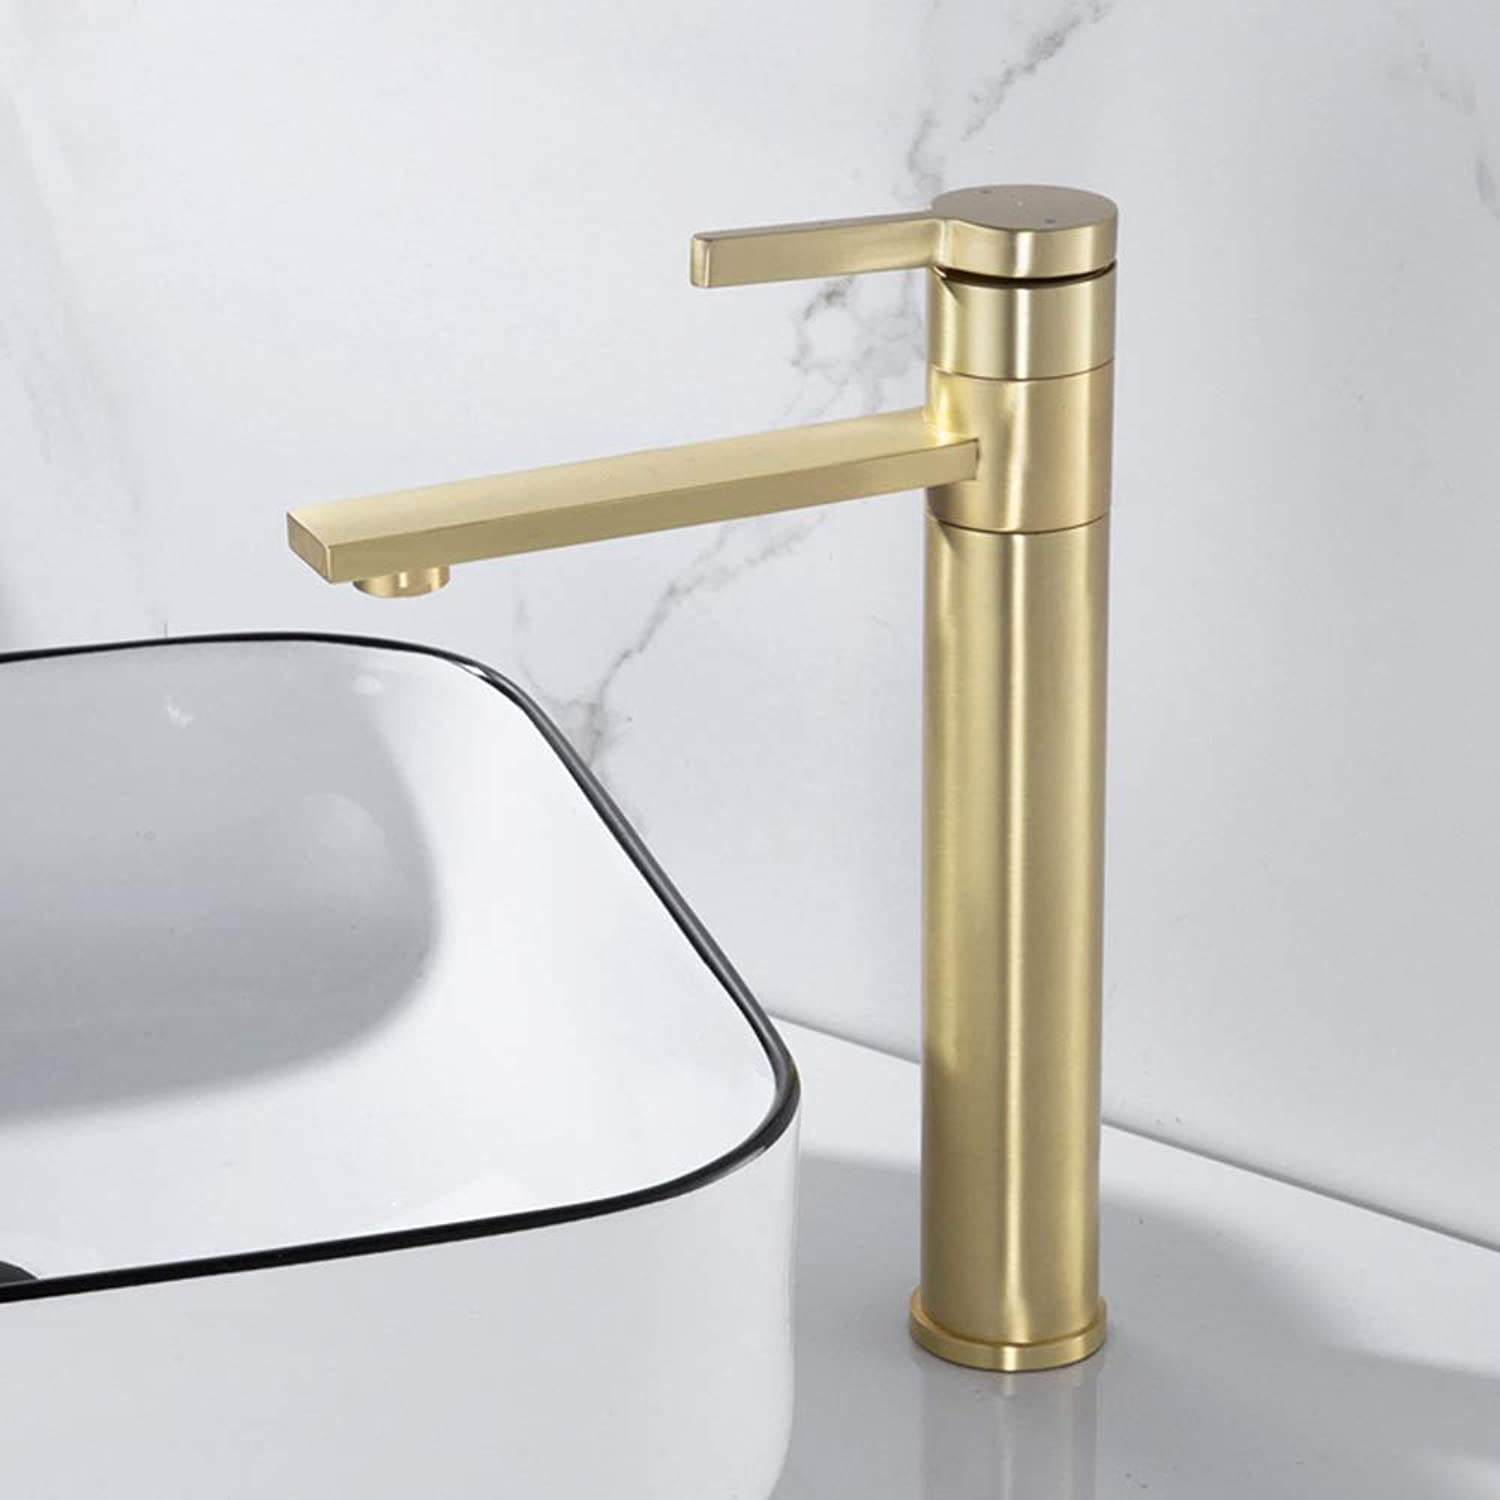 AmzGxp Nordic Brass Basin Faucet Copper Hot And Cold redating Faucet Matte Brushed gold Washbasin Faucet (Size   Long section)